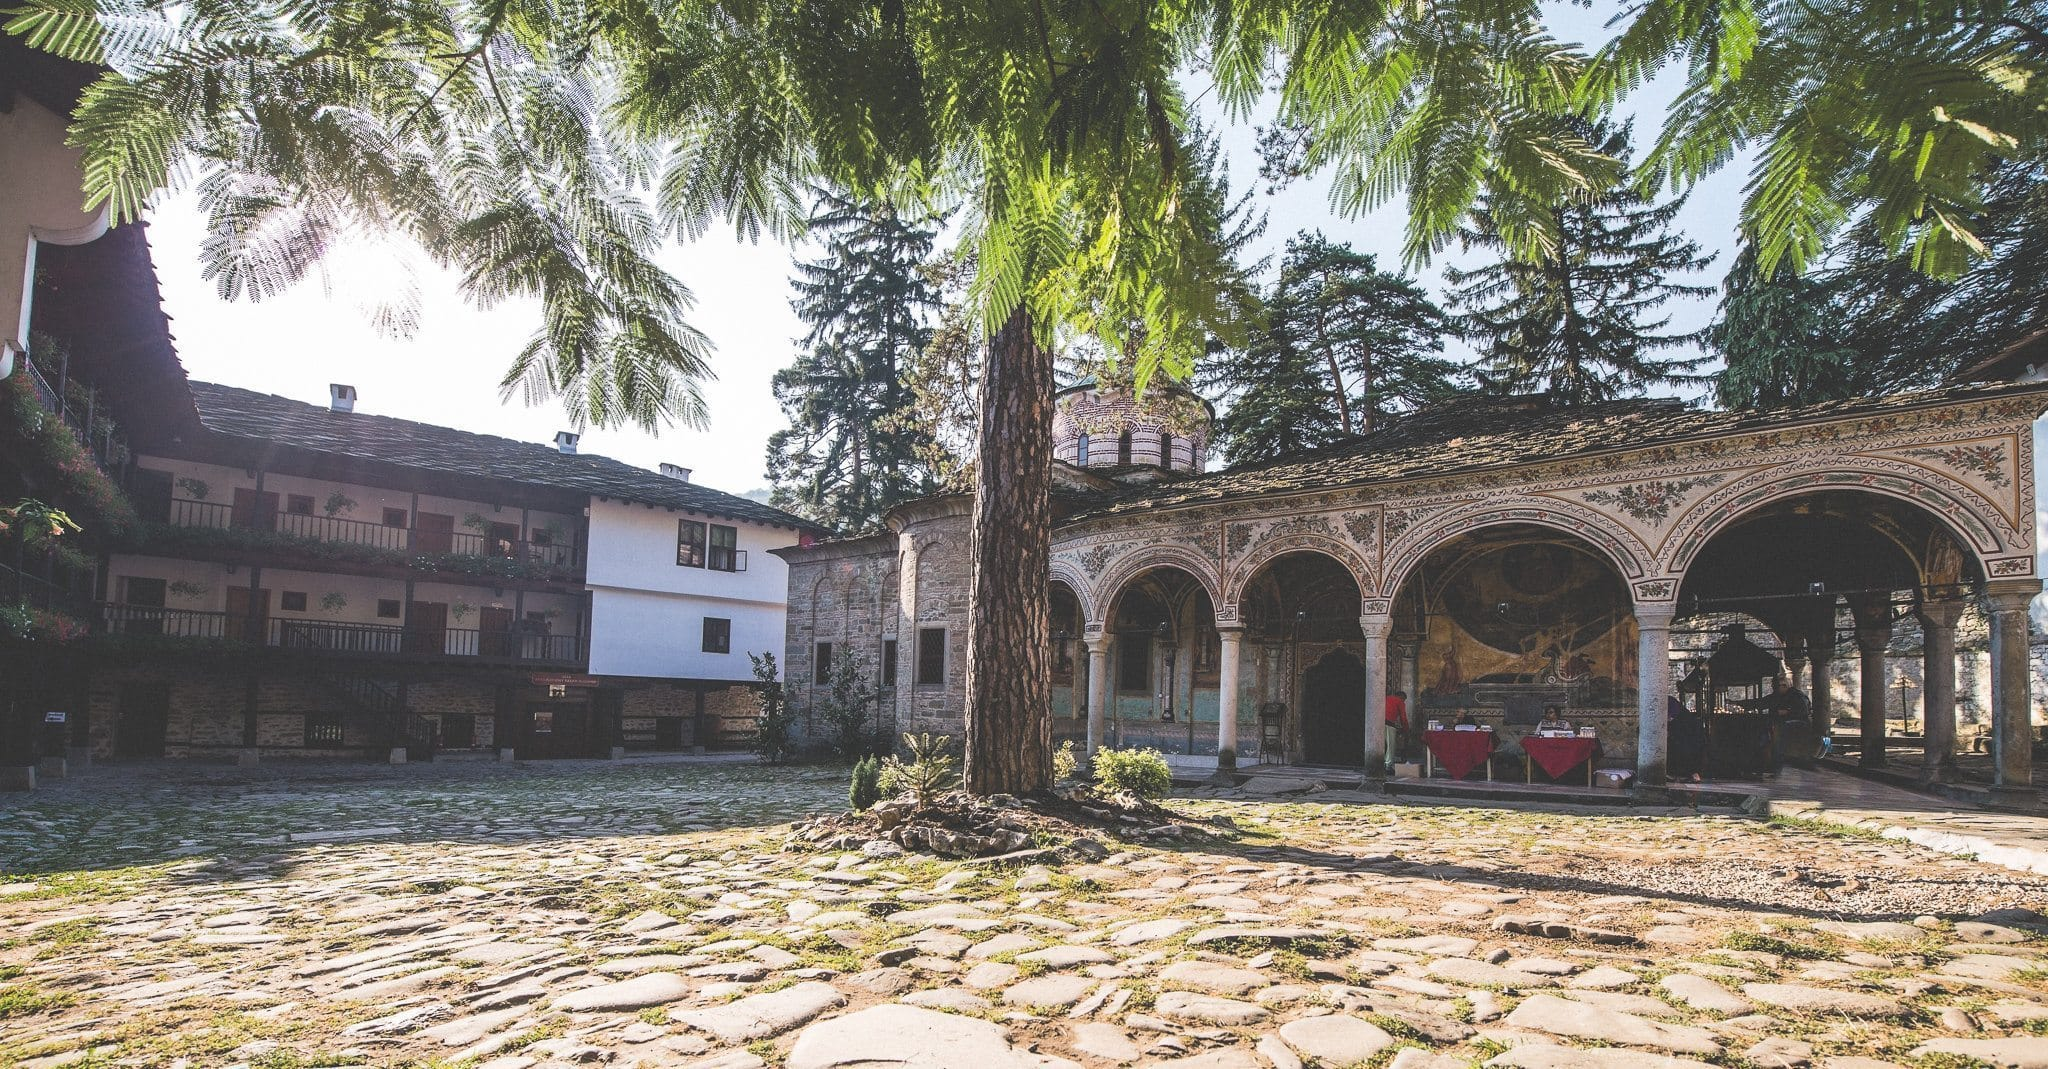 The courtyard and church at the Troyan monastery